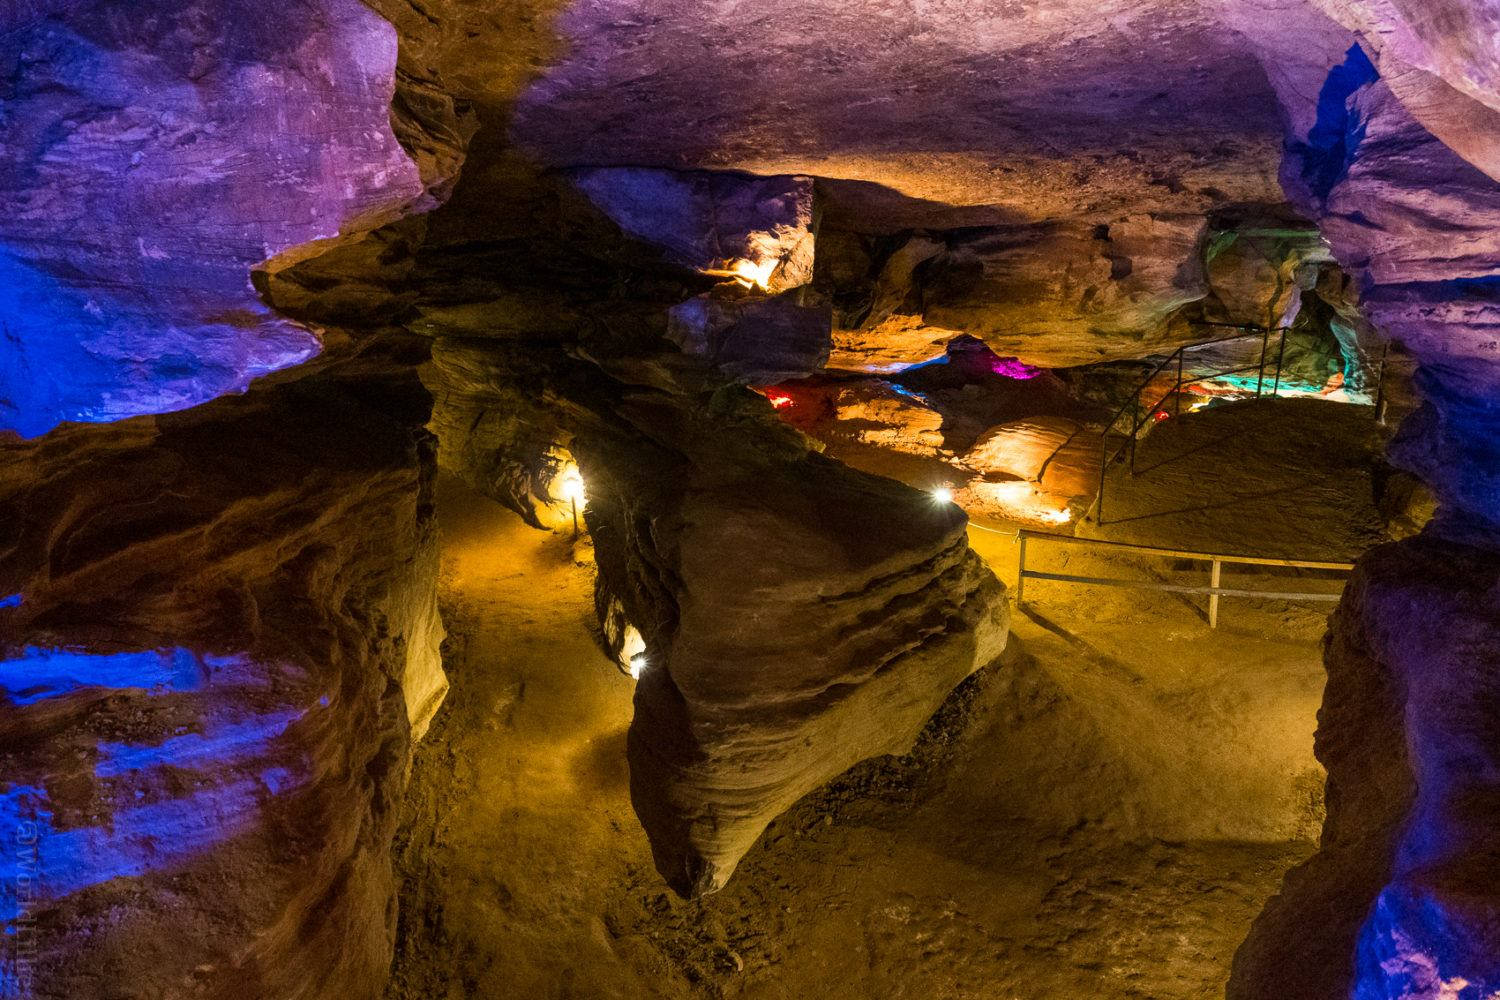 Looking down at a triangular rock formation in the caverns.